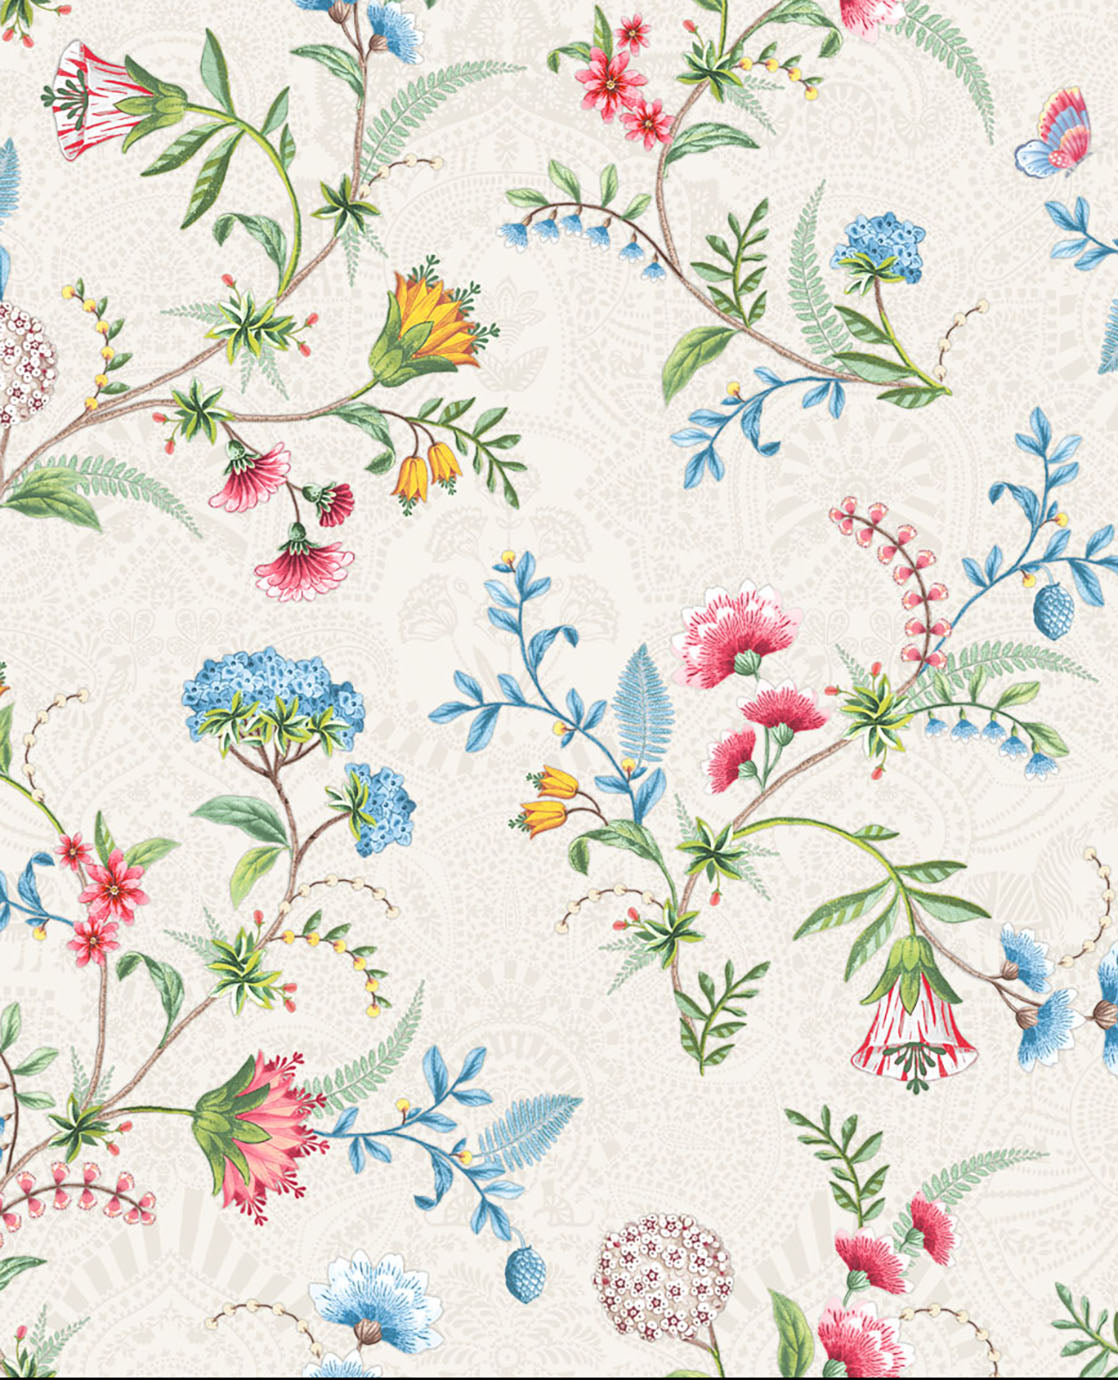 Pip Studio No 120 Wallpaper, White / Multi Color